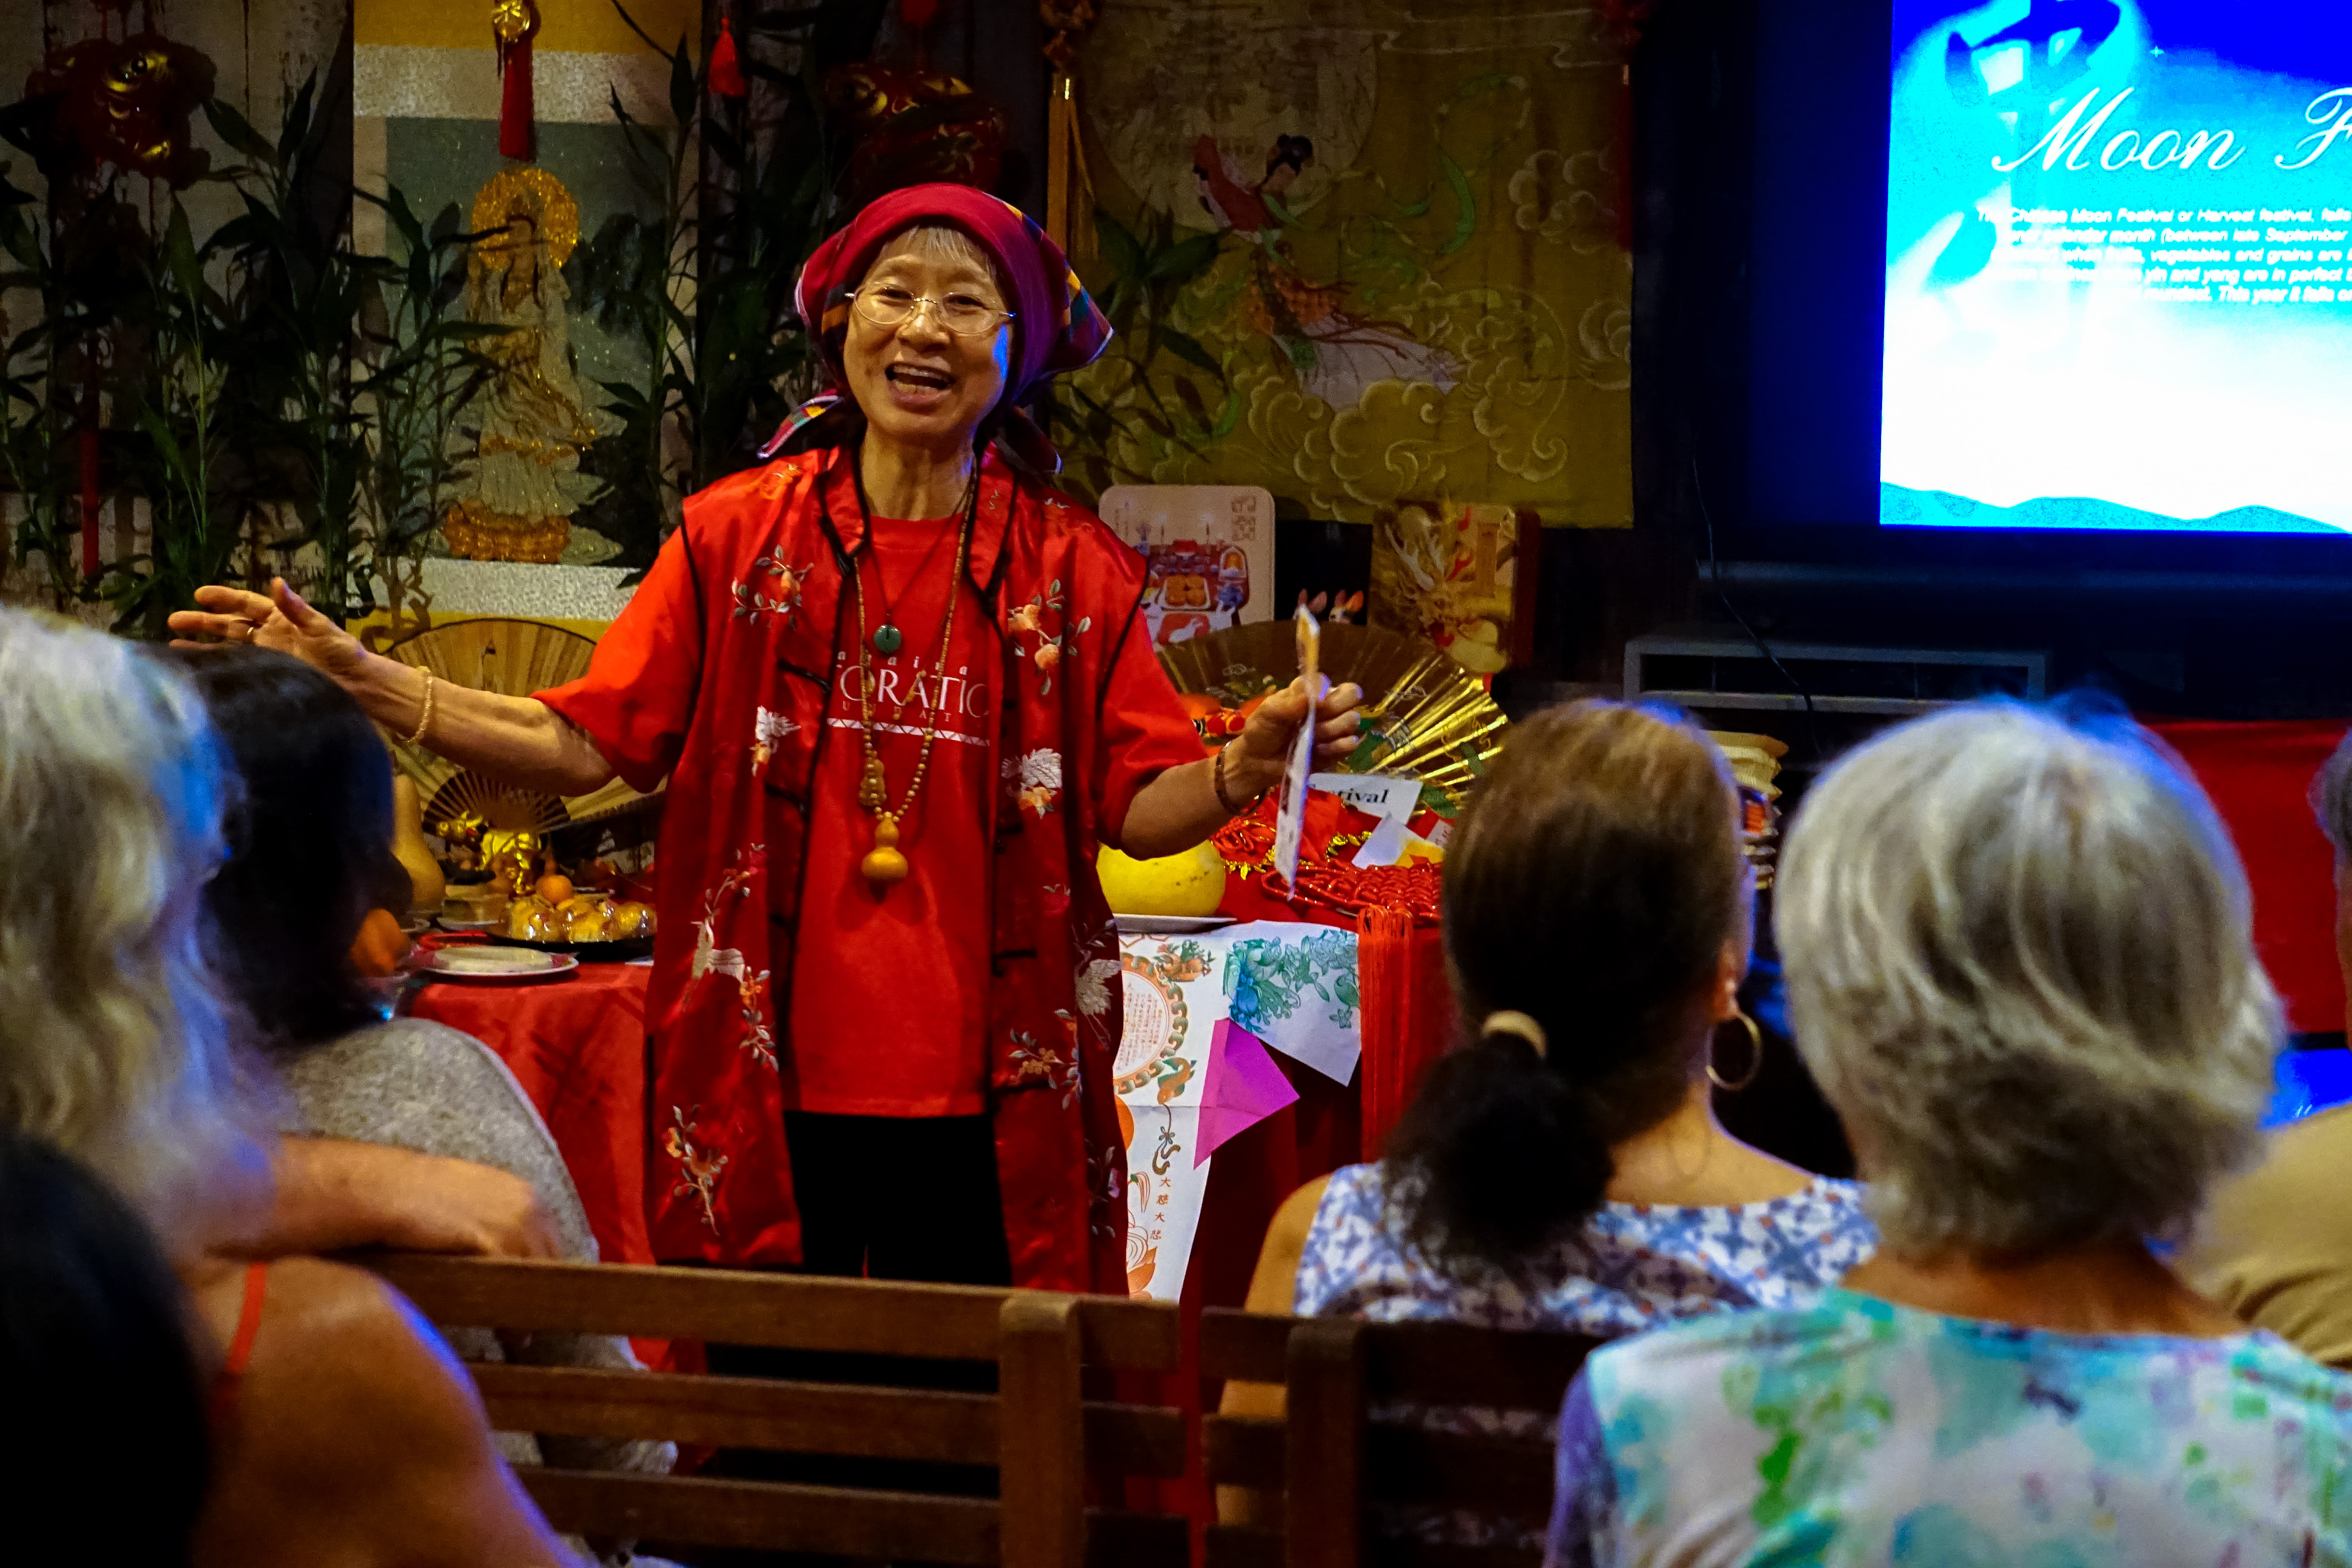 Chinese Moon Festival Celebration in Lahaina, Sept. 9-14